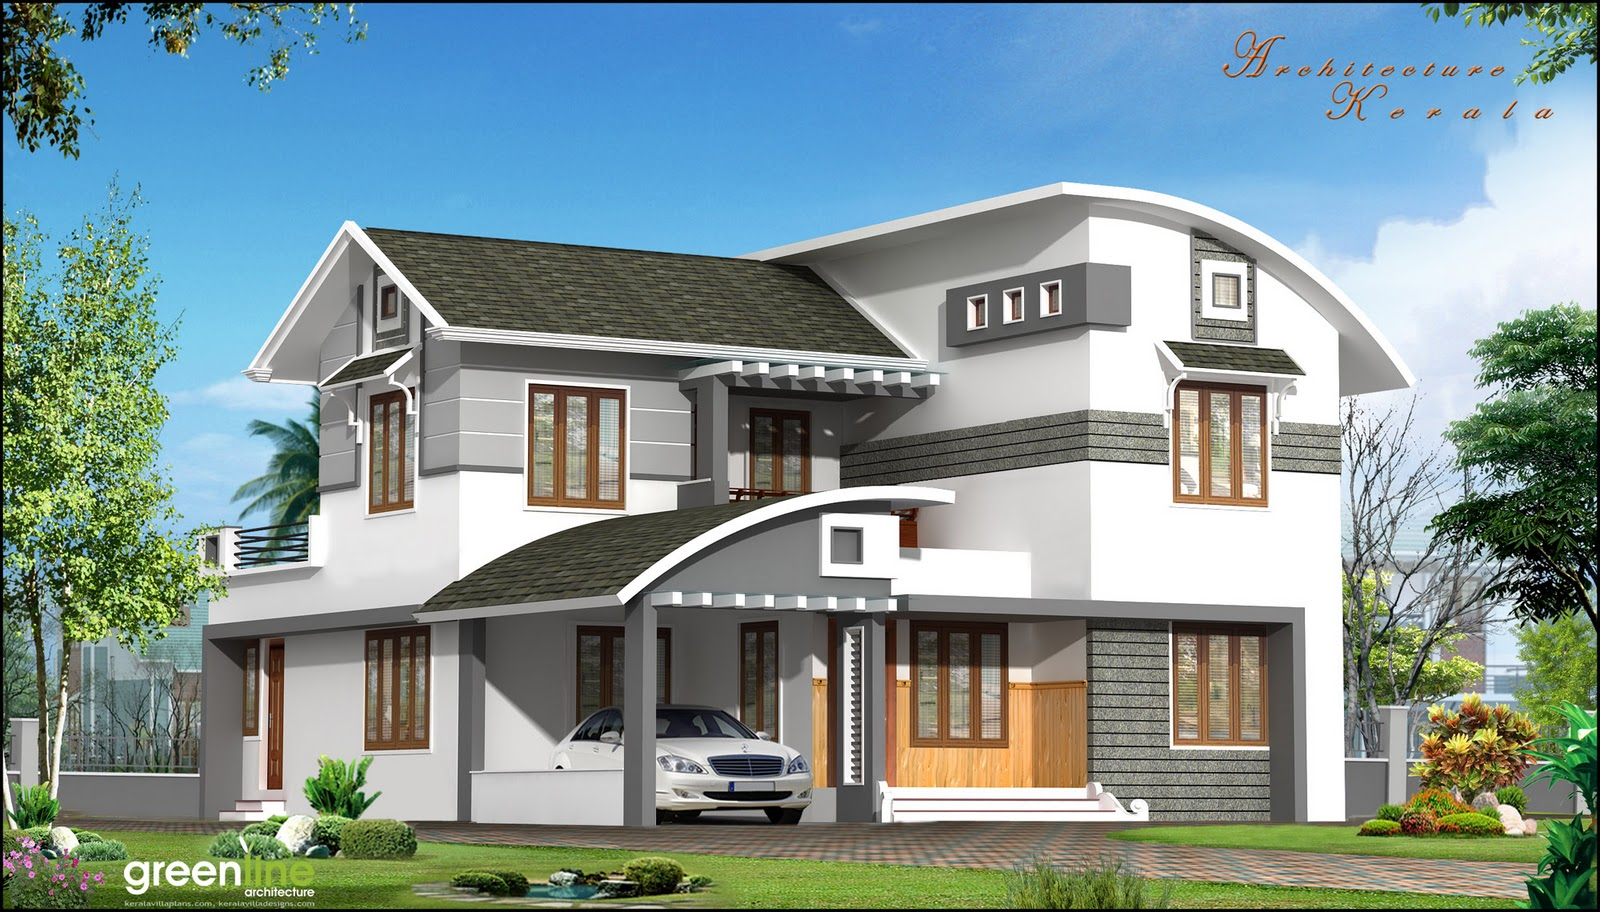 Architecture kerala a beautiful house elevation for House elevation photos architecture